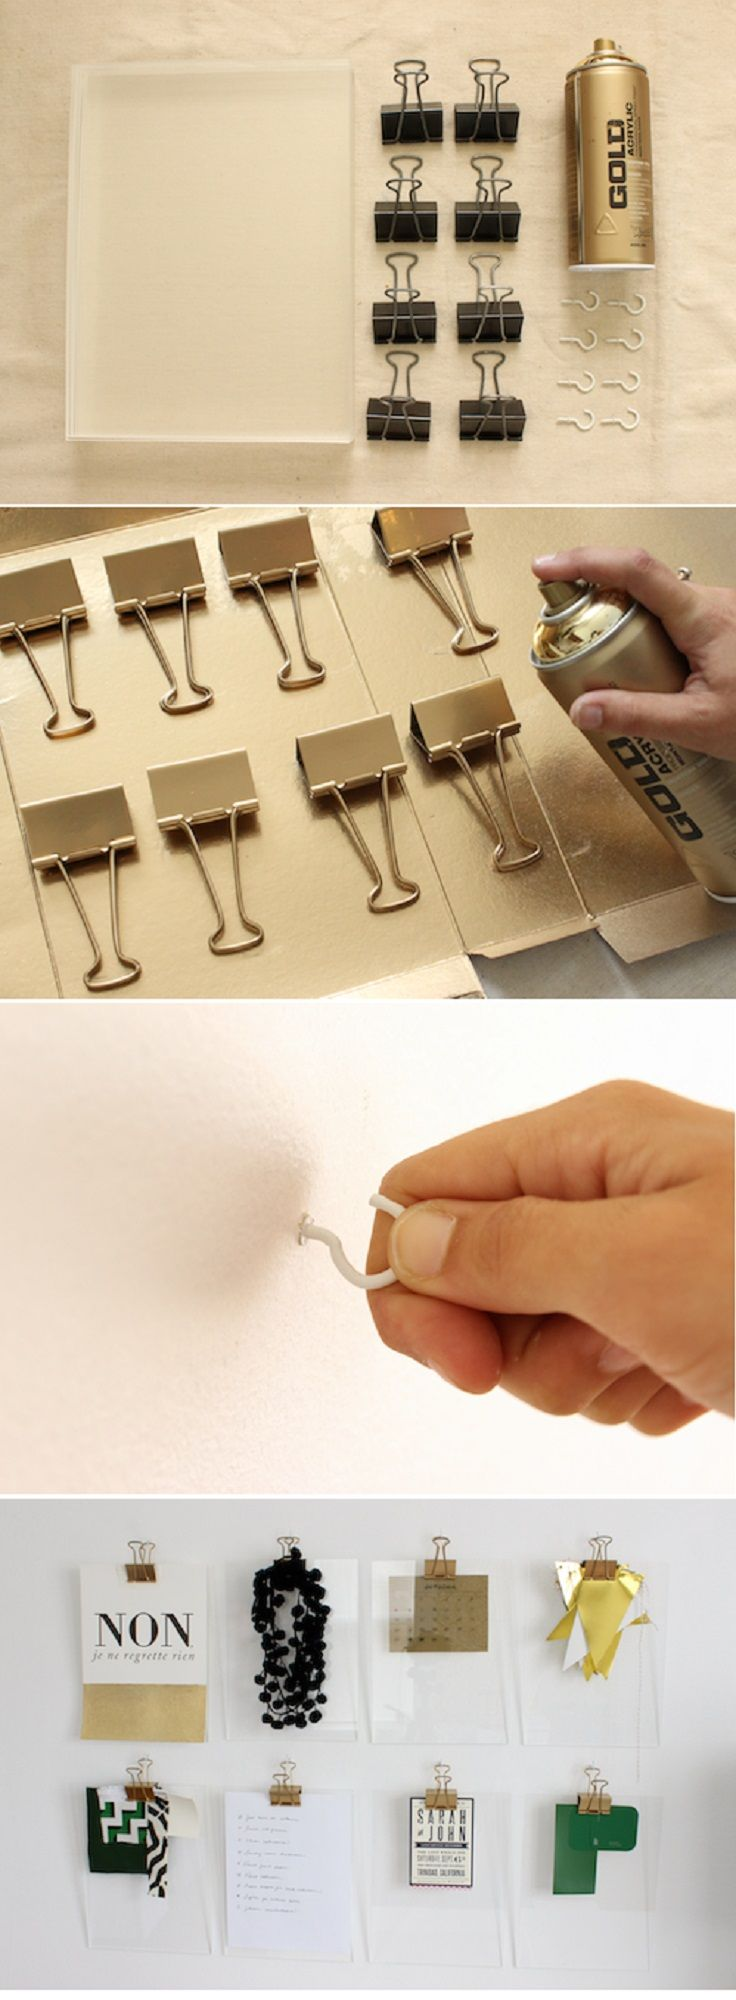 Top 10 DIY Ideas For Your Office Diy bedroom decor, Diy